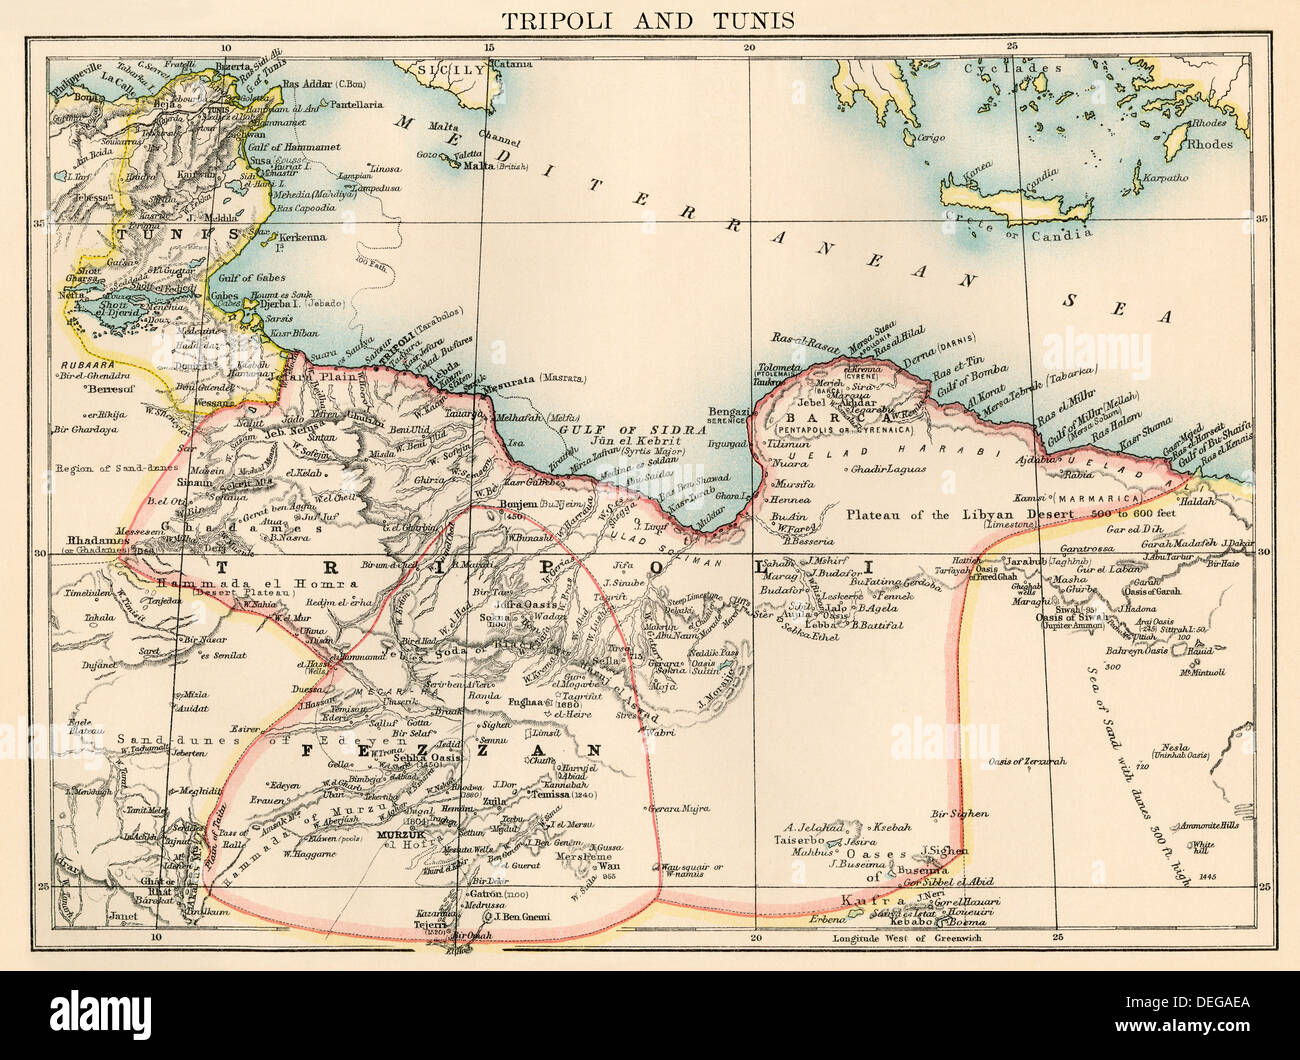 Map of libya stock photos map of libya stock images alamy map of tripoli libya and tunis 1870s color lithograph stock image publicscrutiny Images